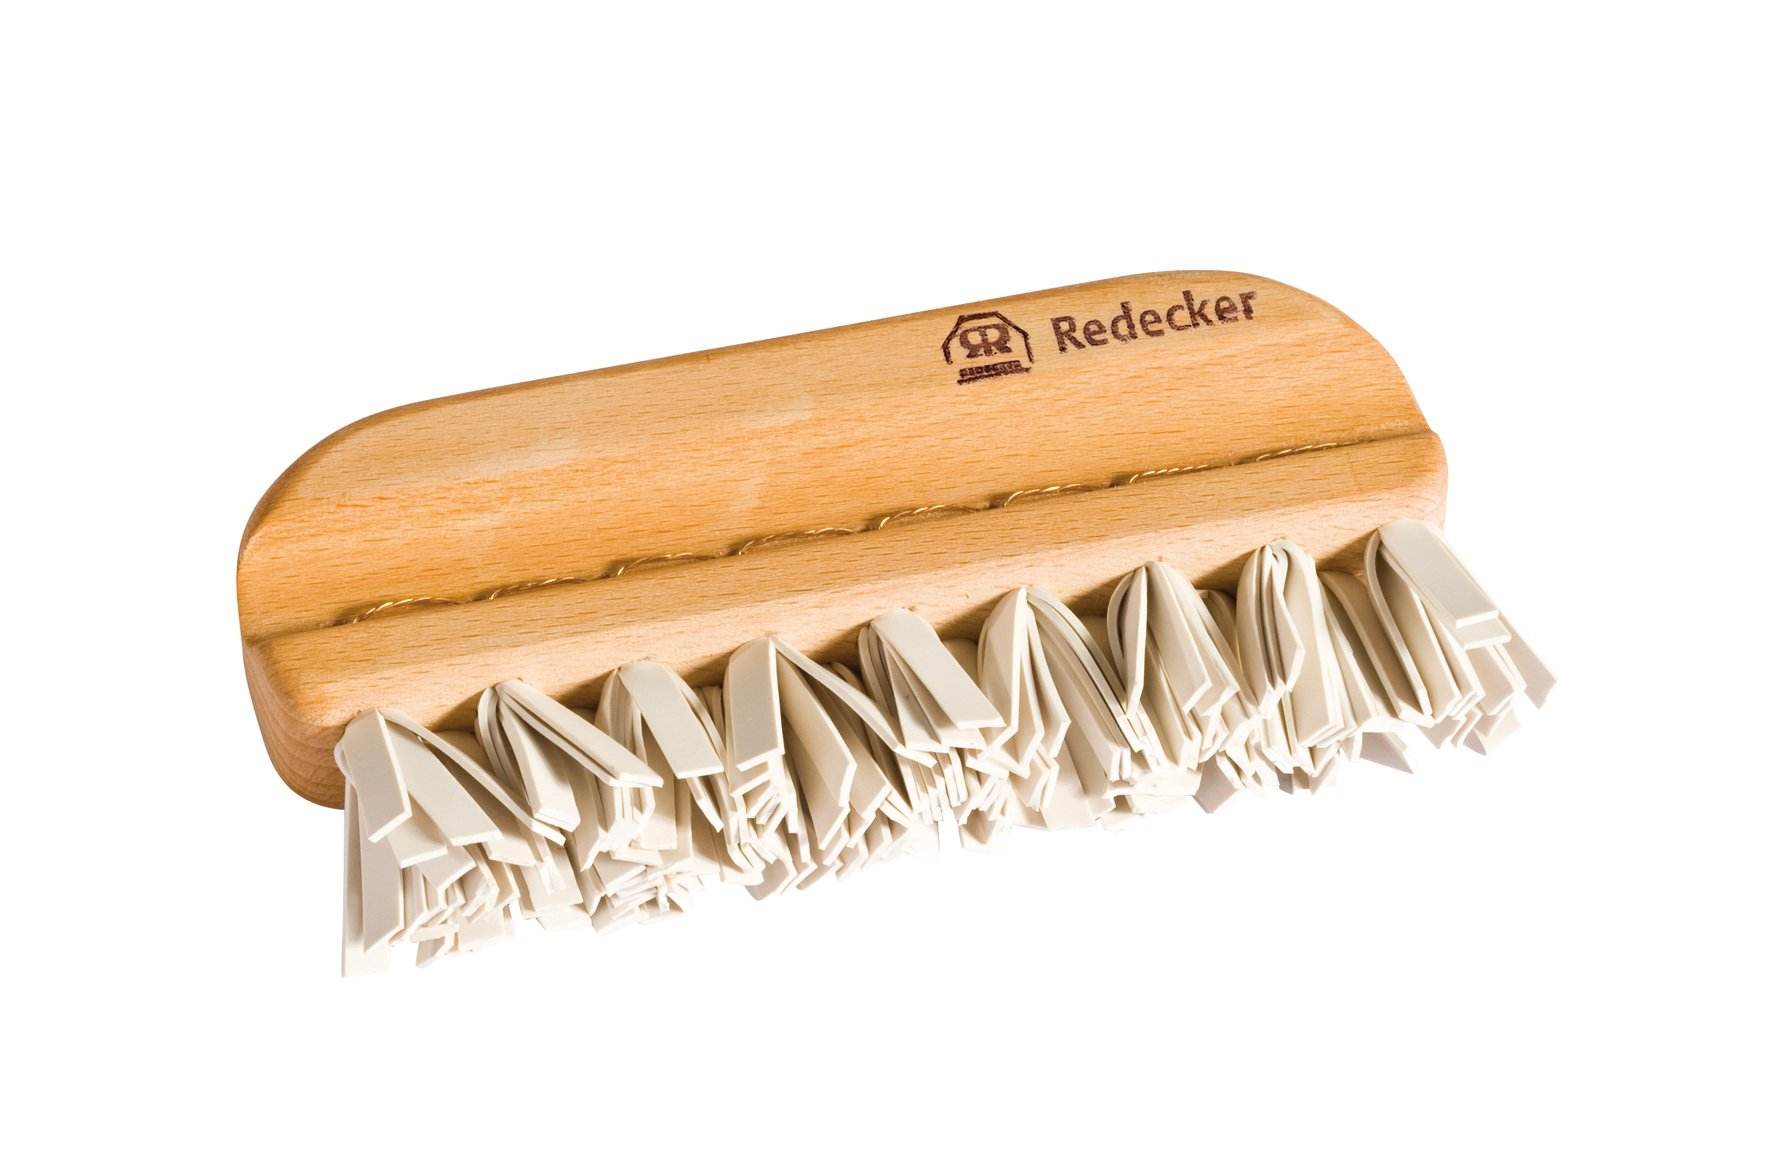 REDECKER Natural Lint Brush with Oiled Beechwood, 5-1/4'', Easy to Clean Rubber Bristles Effectively Attract and Trap Hair, Made in Germany